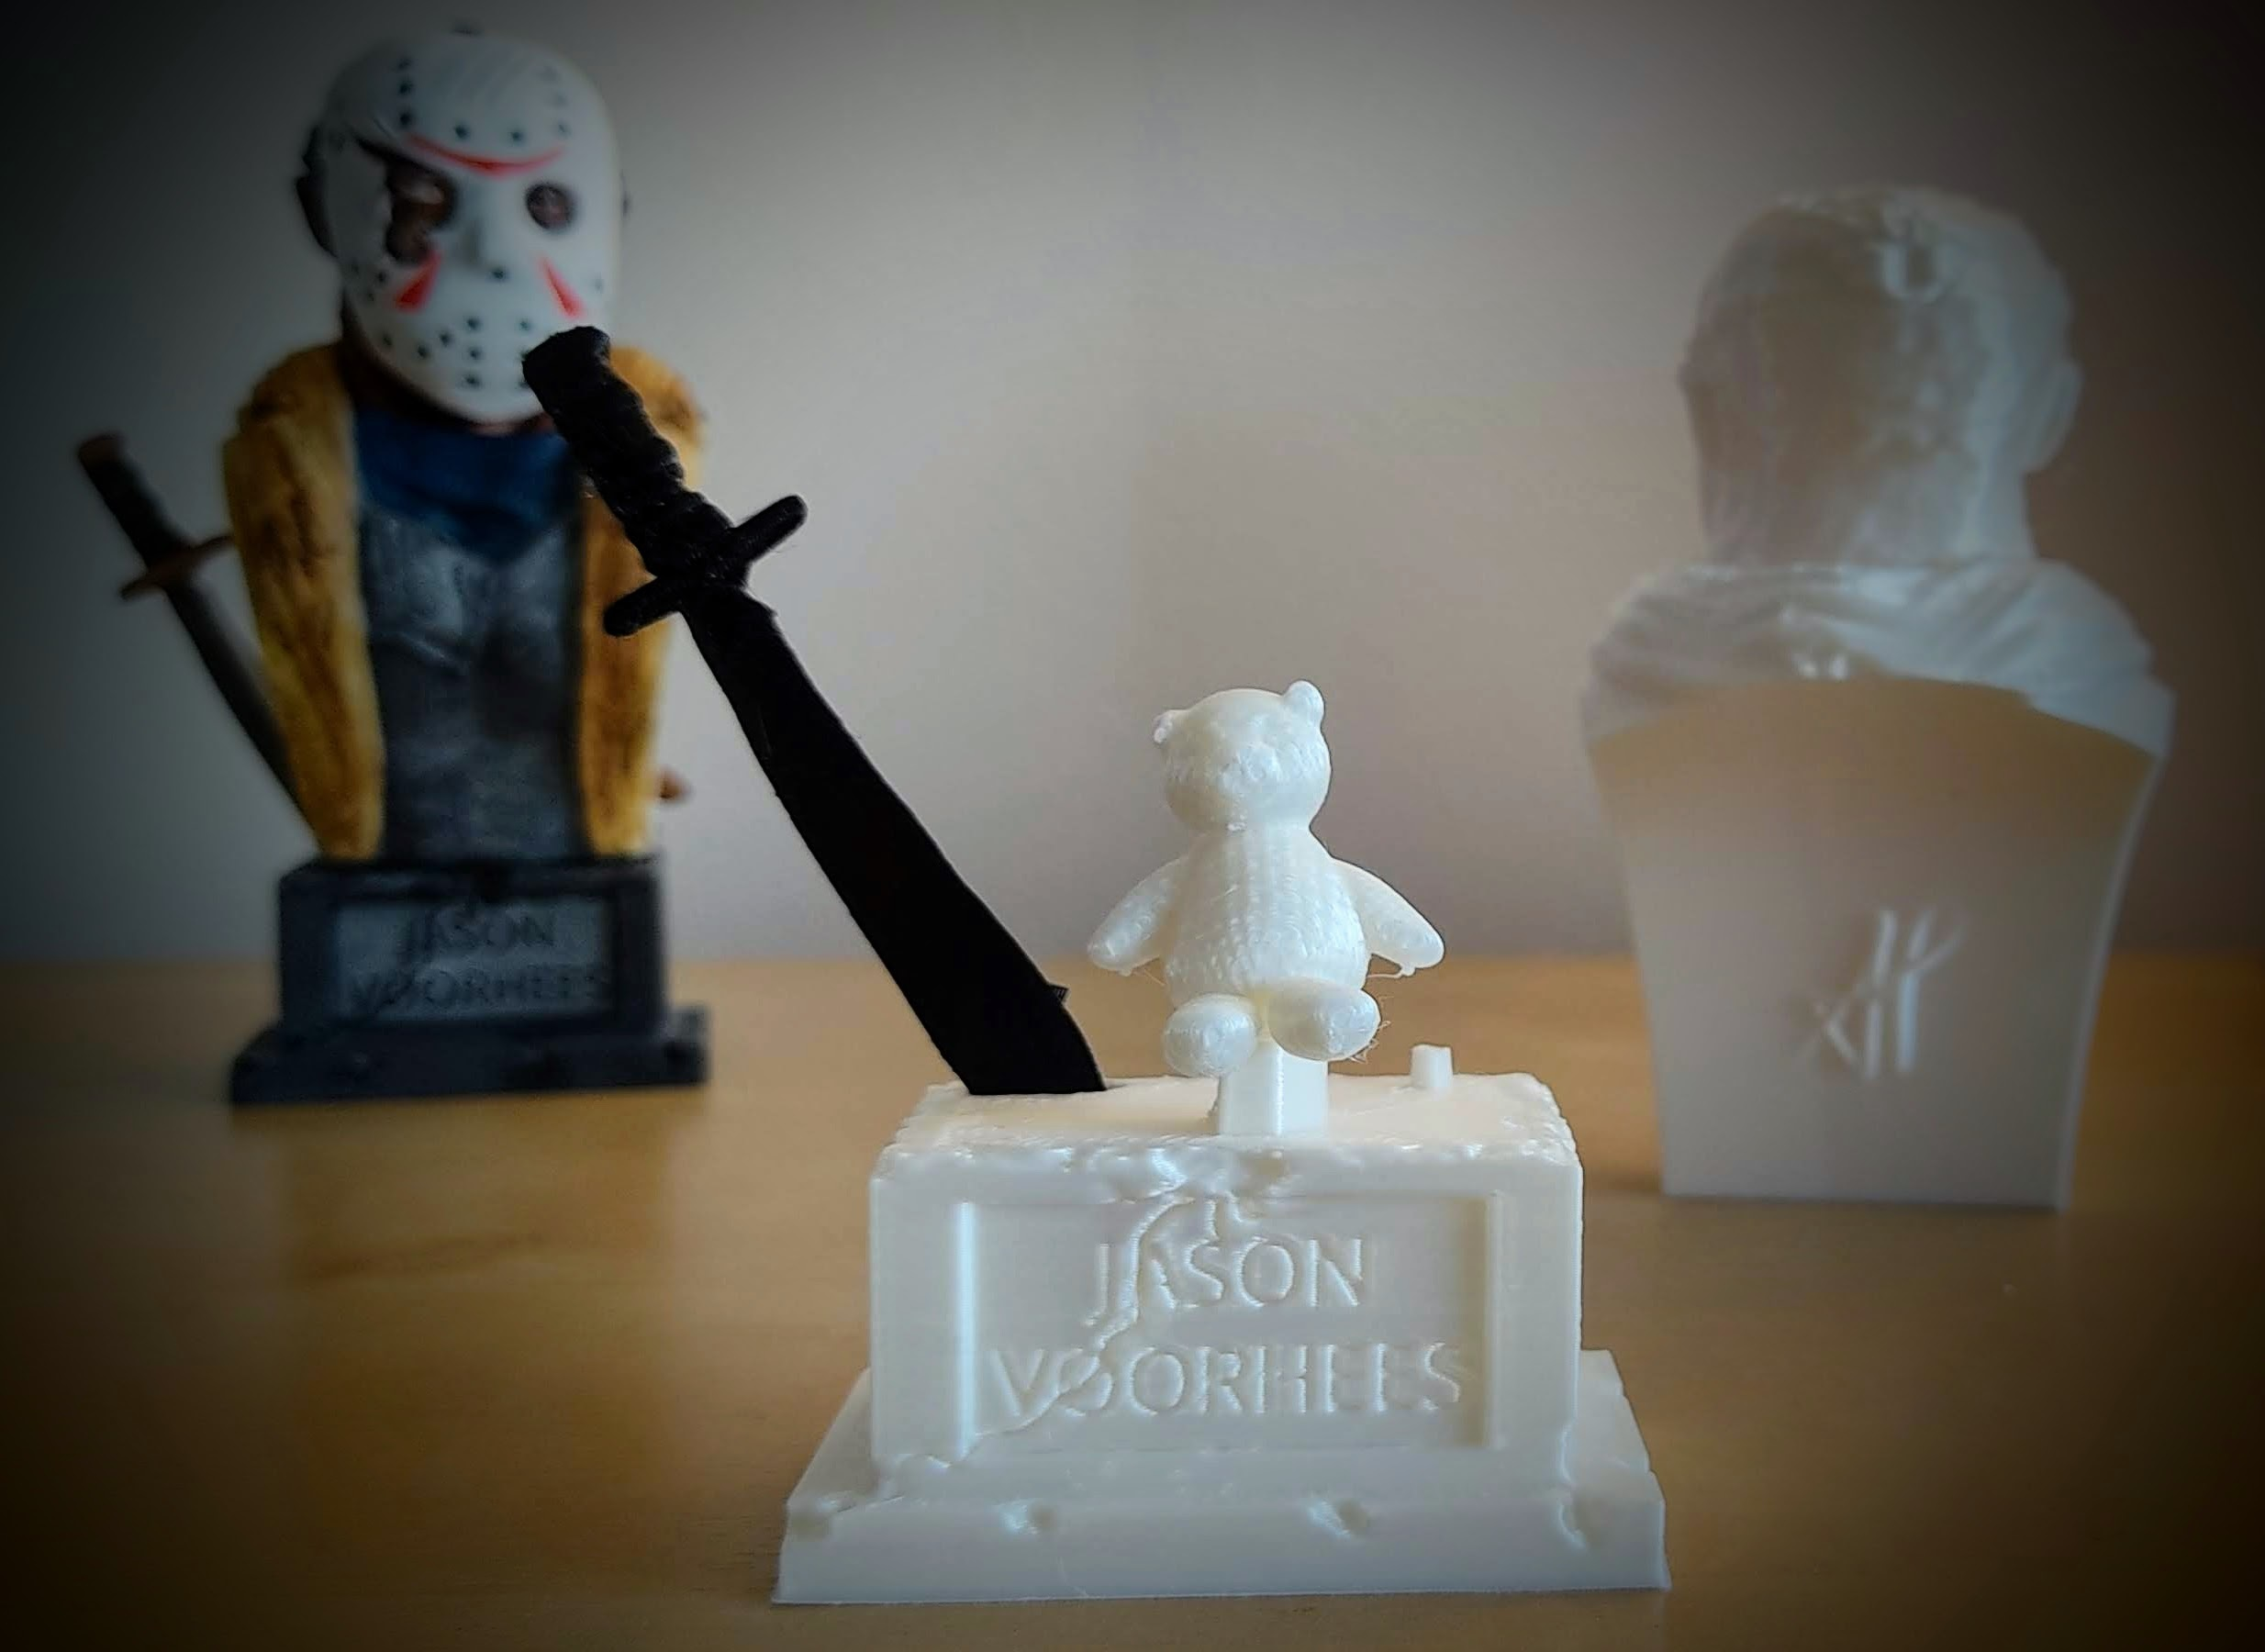 IMG_20201115_115105.jpg Download STL file Jason Voorhees: Bust for 3D printing • 3D printable model, AntonioPugliese